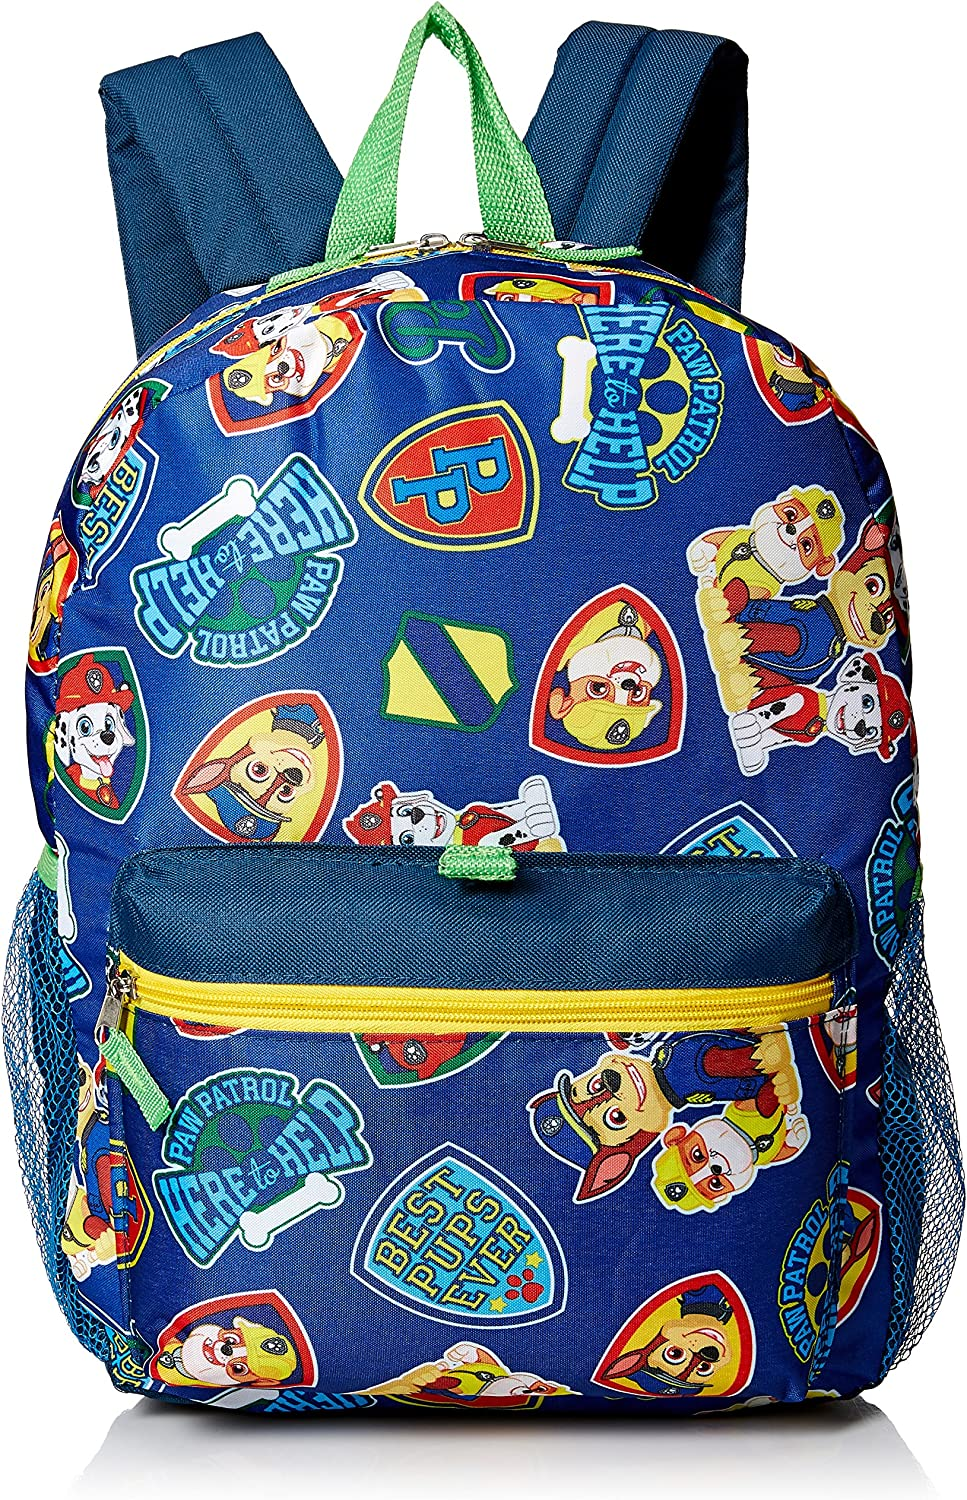 Nickelodeon Boys' Paw Patrol Backpack 5pc Set